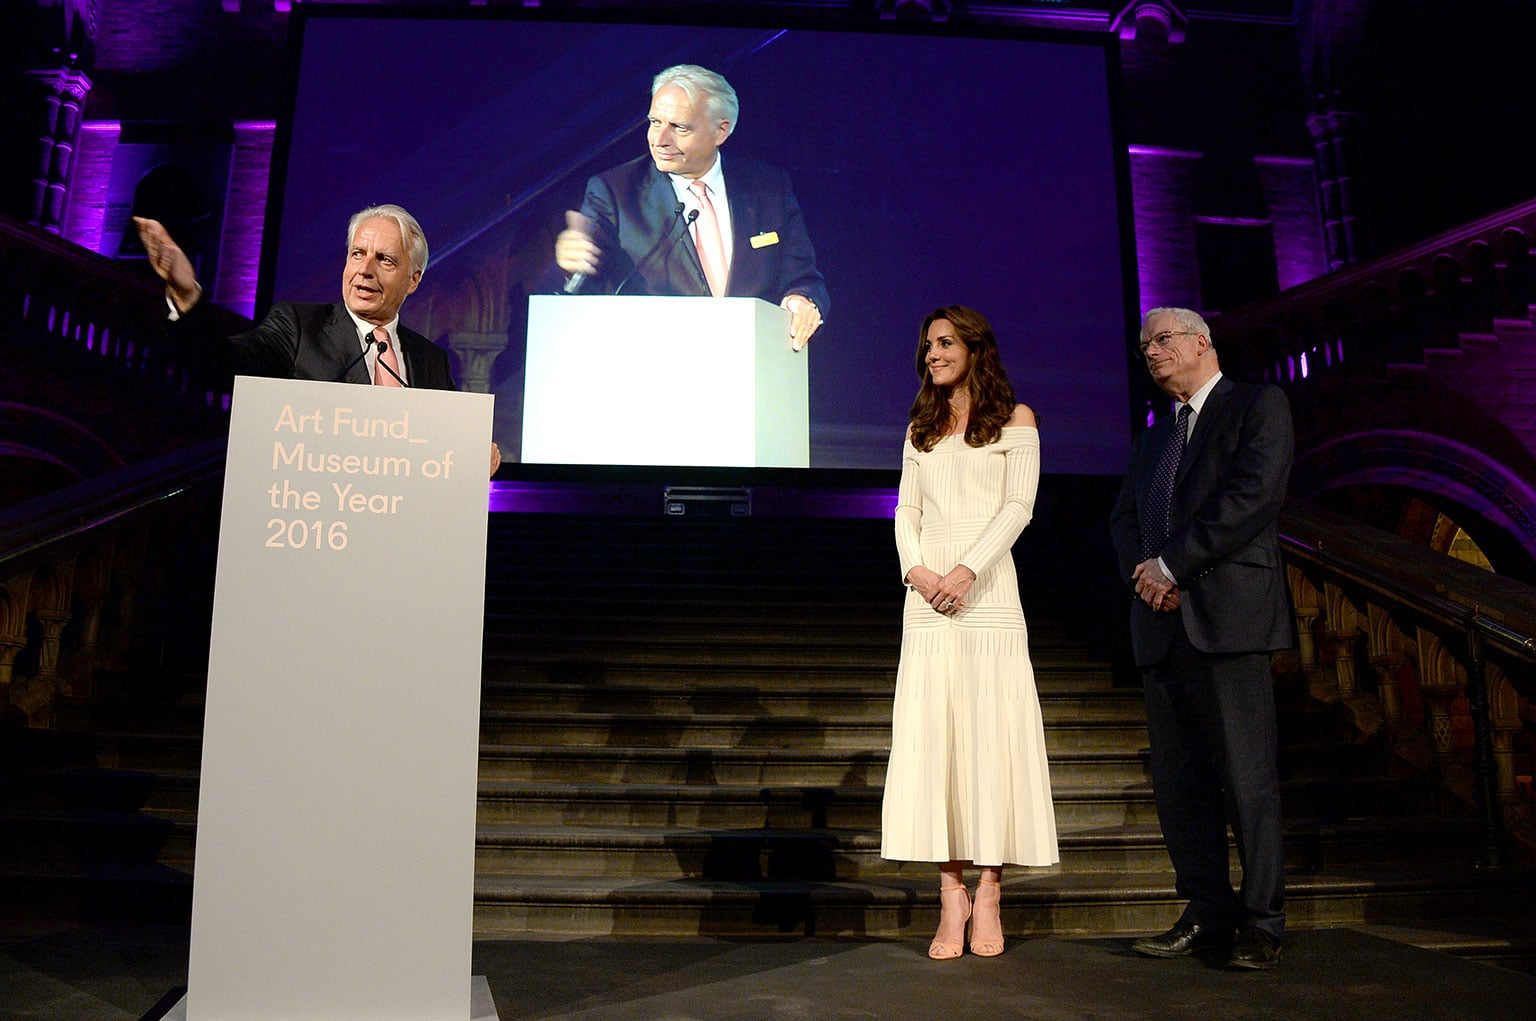 Martin Roth, director of the Victoria and Albert Museum, accepts the prize from HRH The Duchess of Cambridge, with Lord Smith of Finsbury